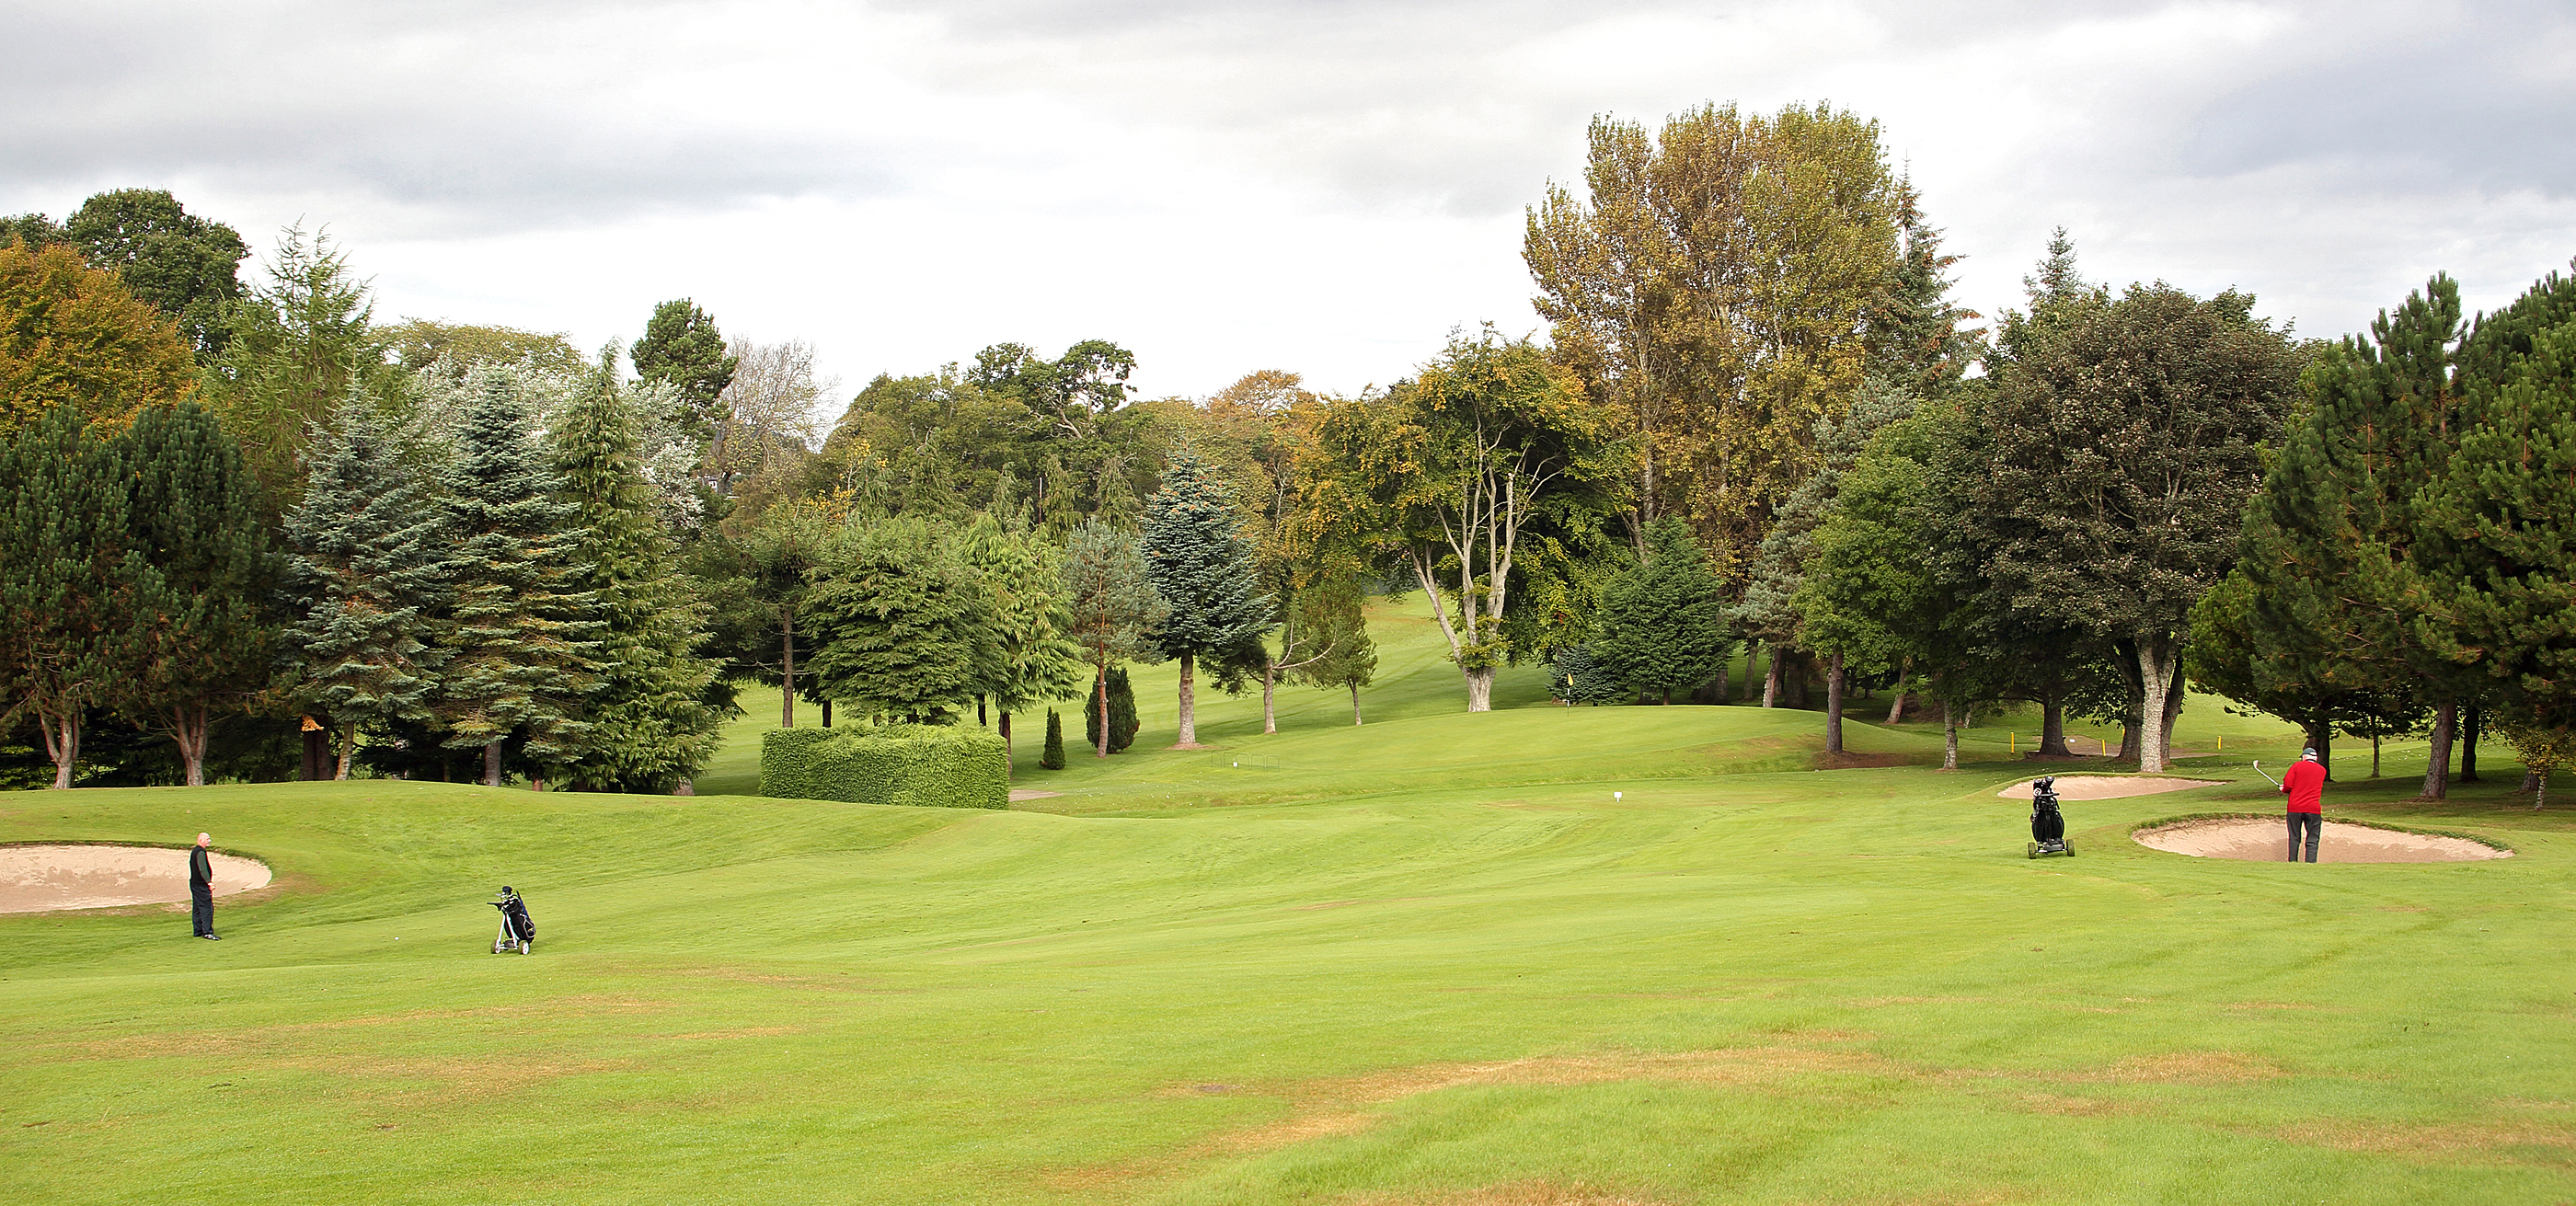 6th Fairway to green